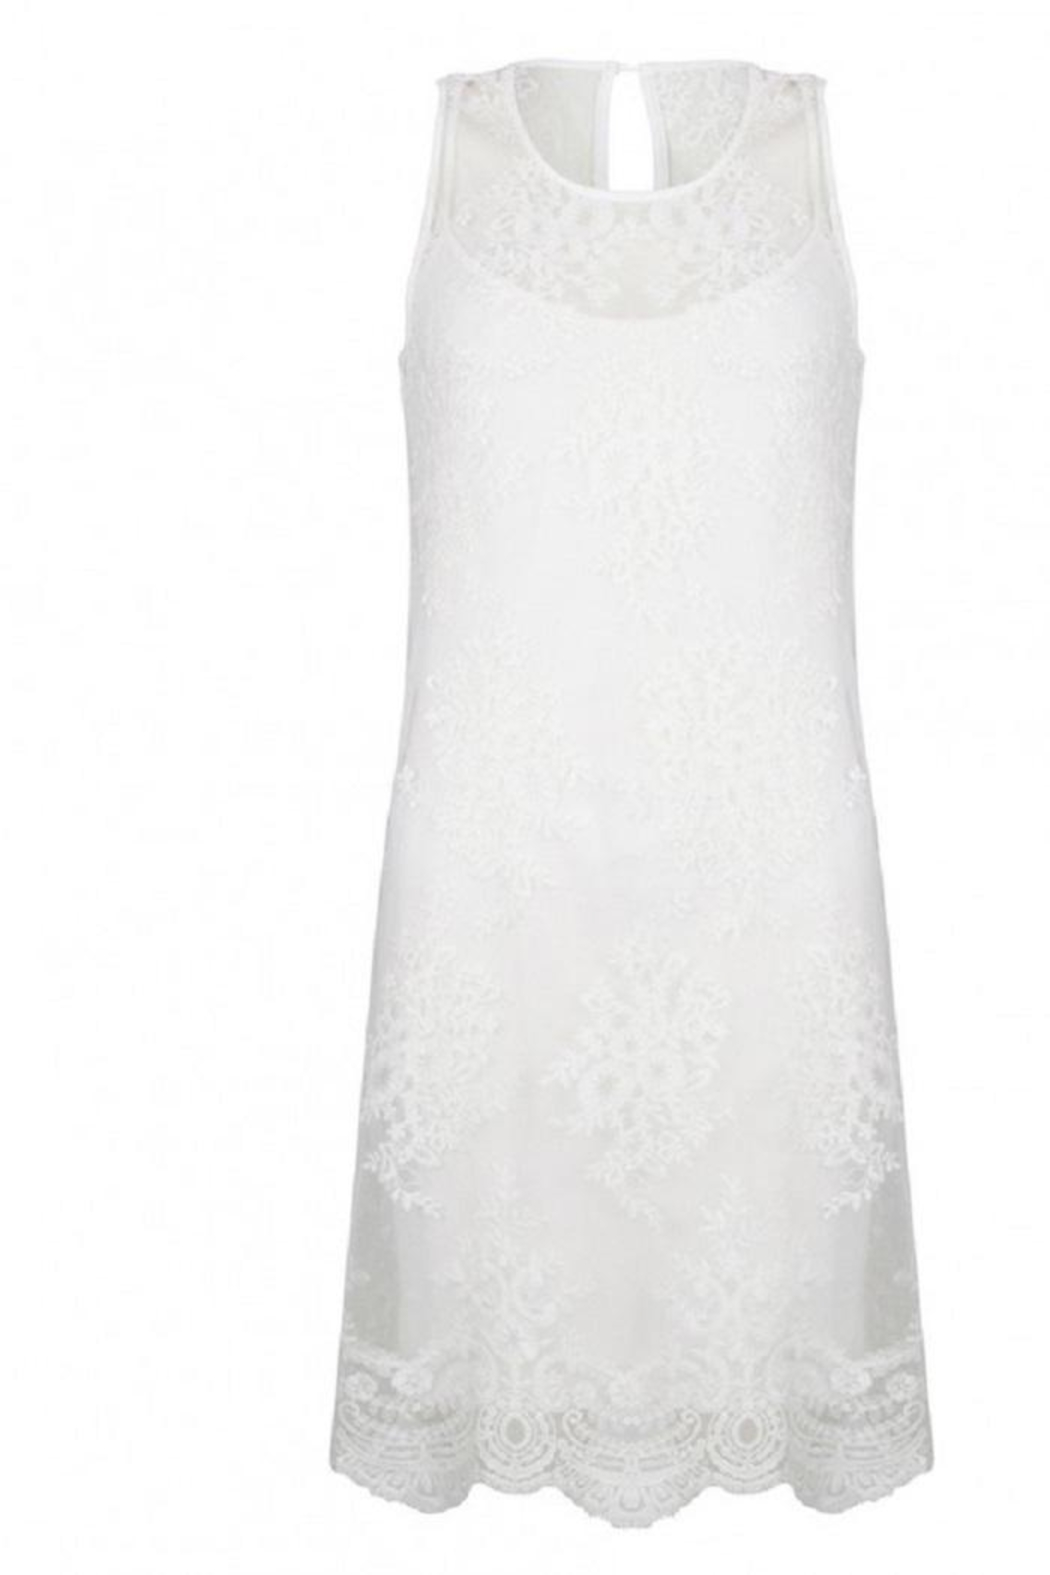 EsQualo Embroidery Mesh Dress - Main Image